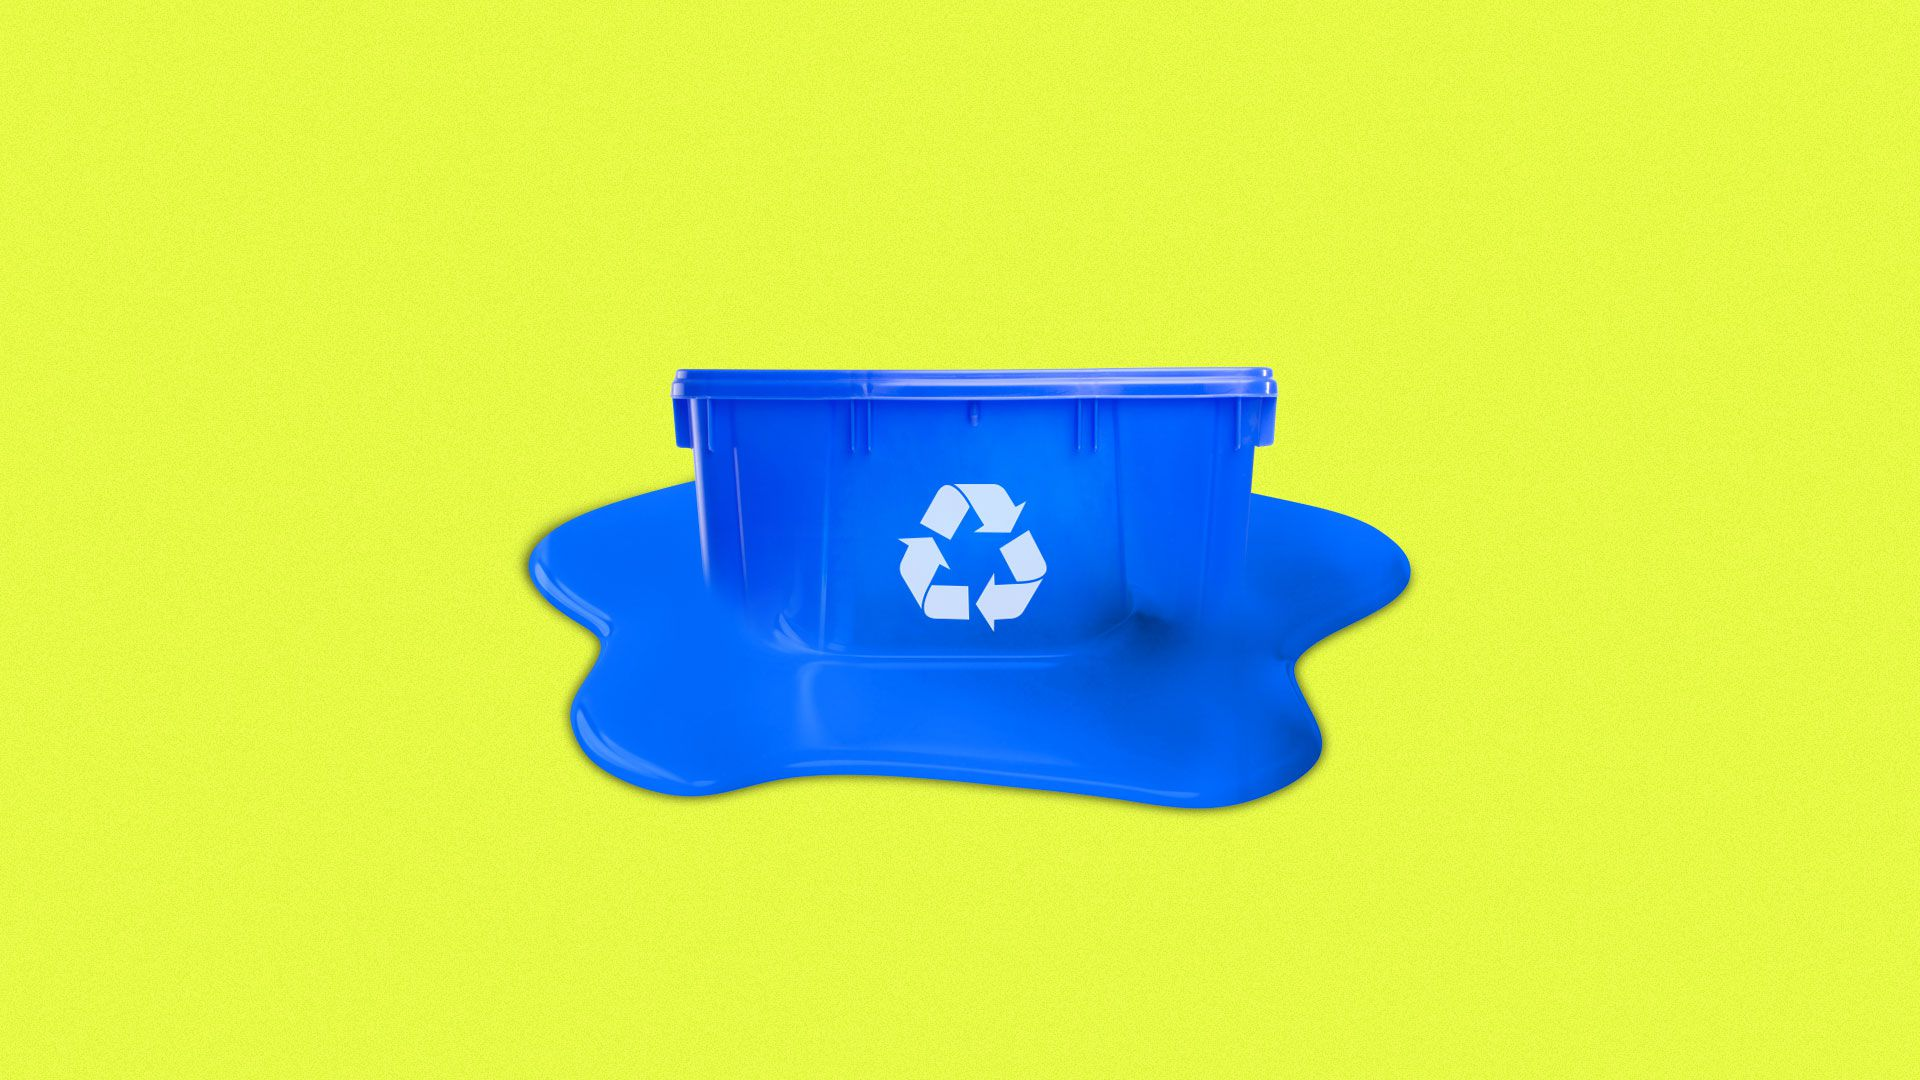 The fraught future of recycling - Axios